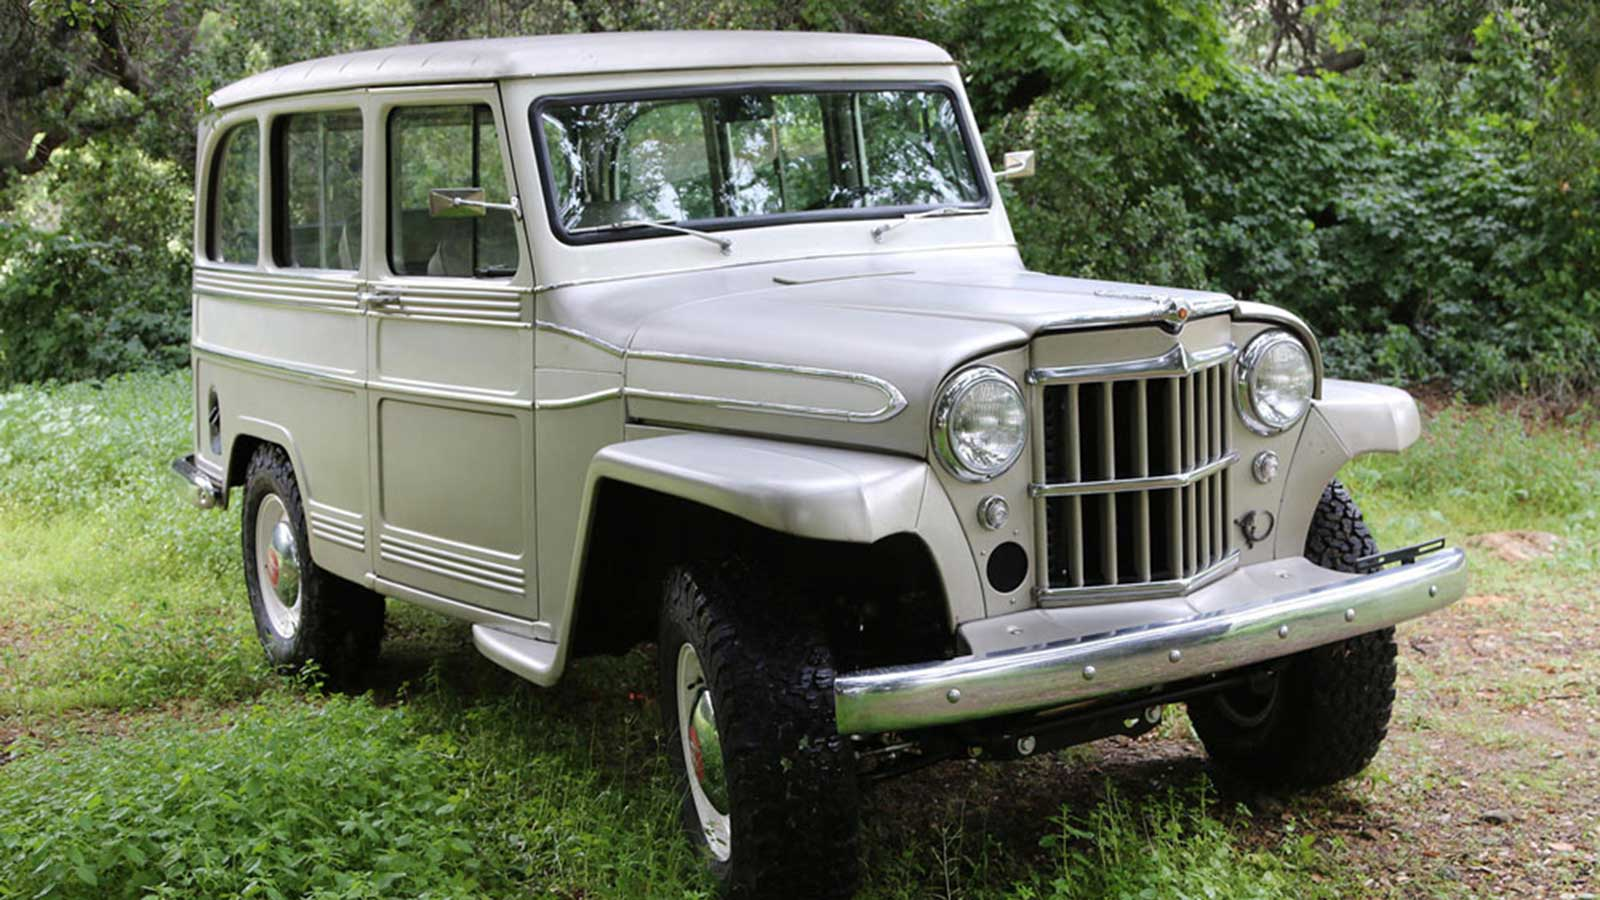 ICON DERELICT 1960 WILLYS OVERLAND WAGON